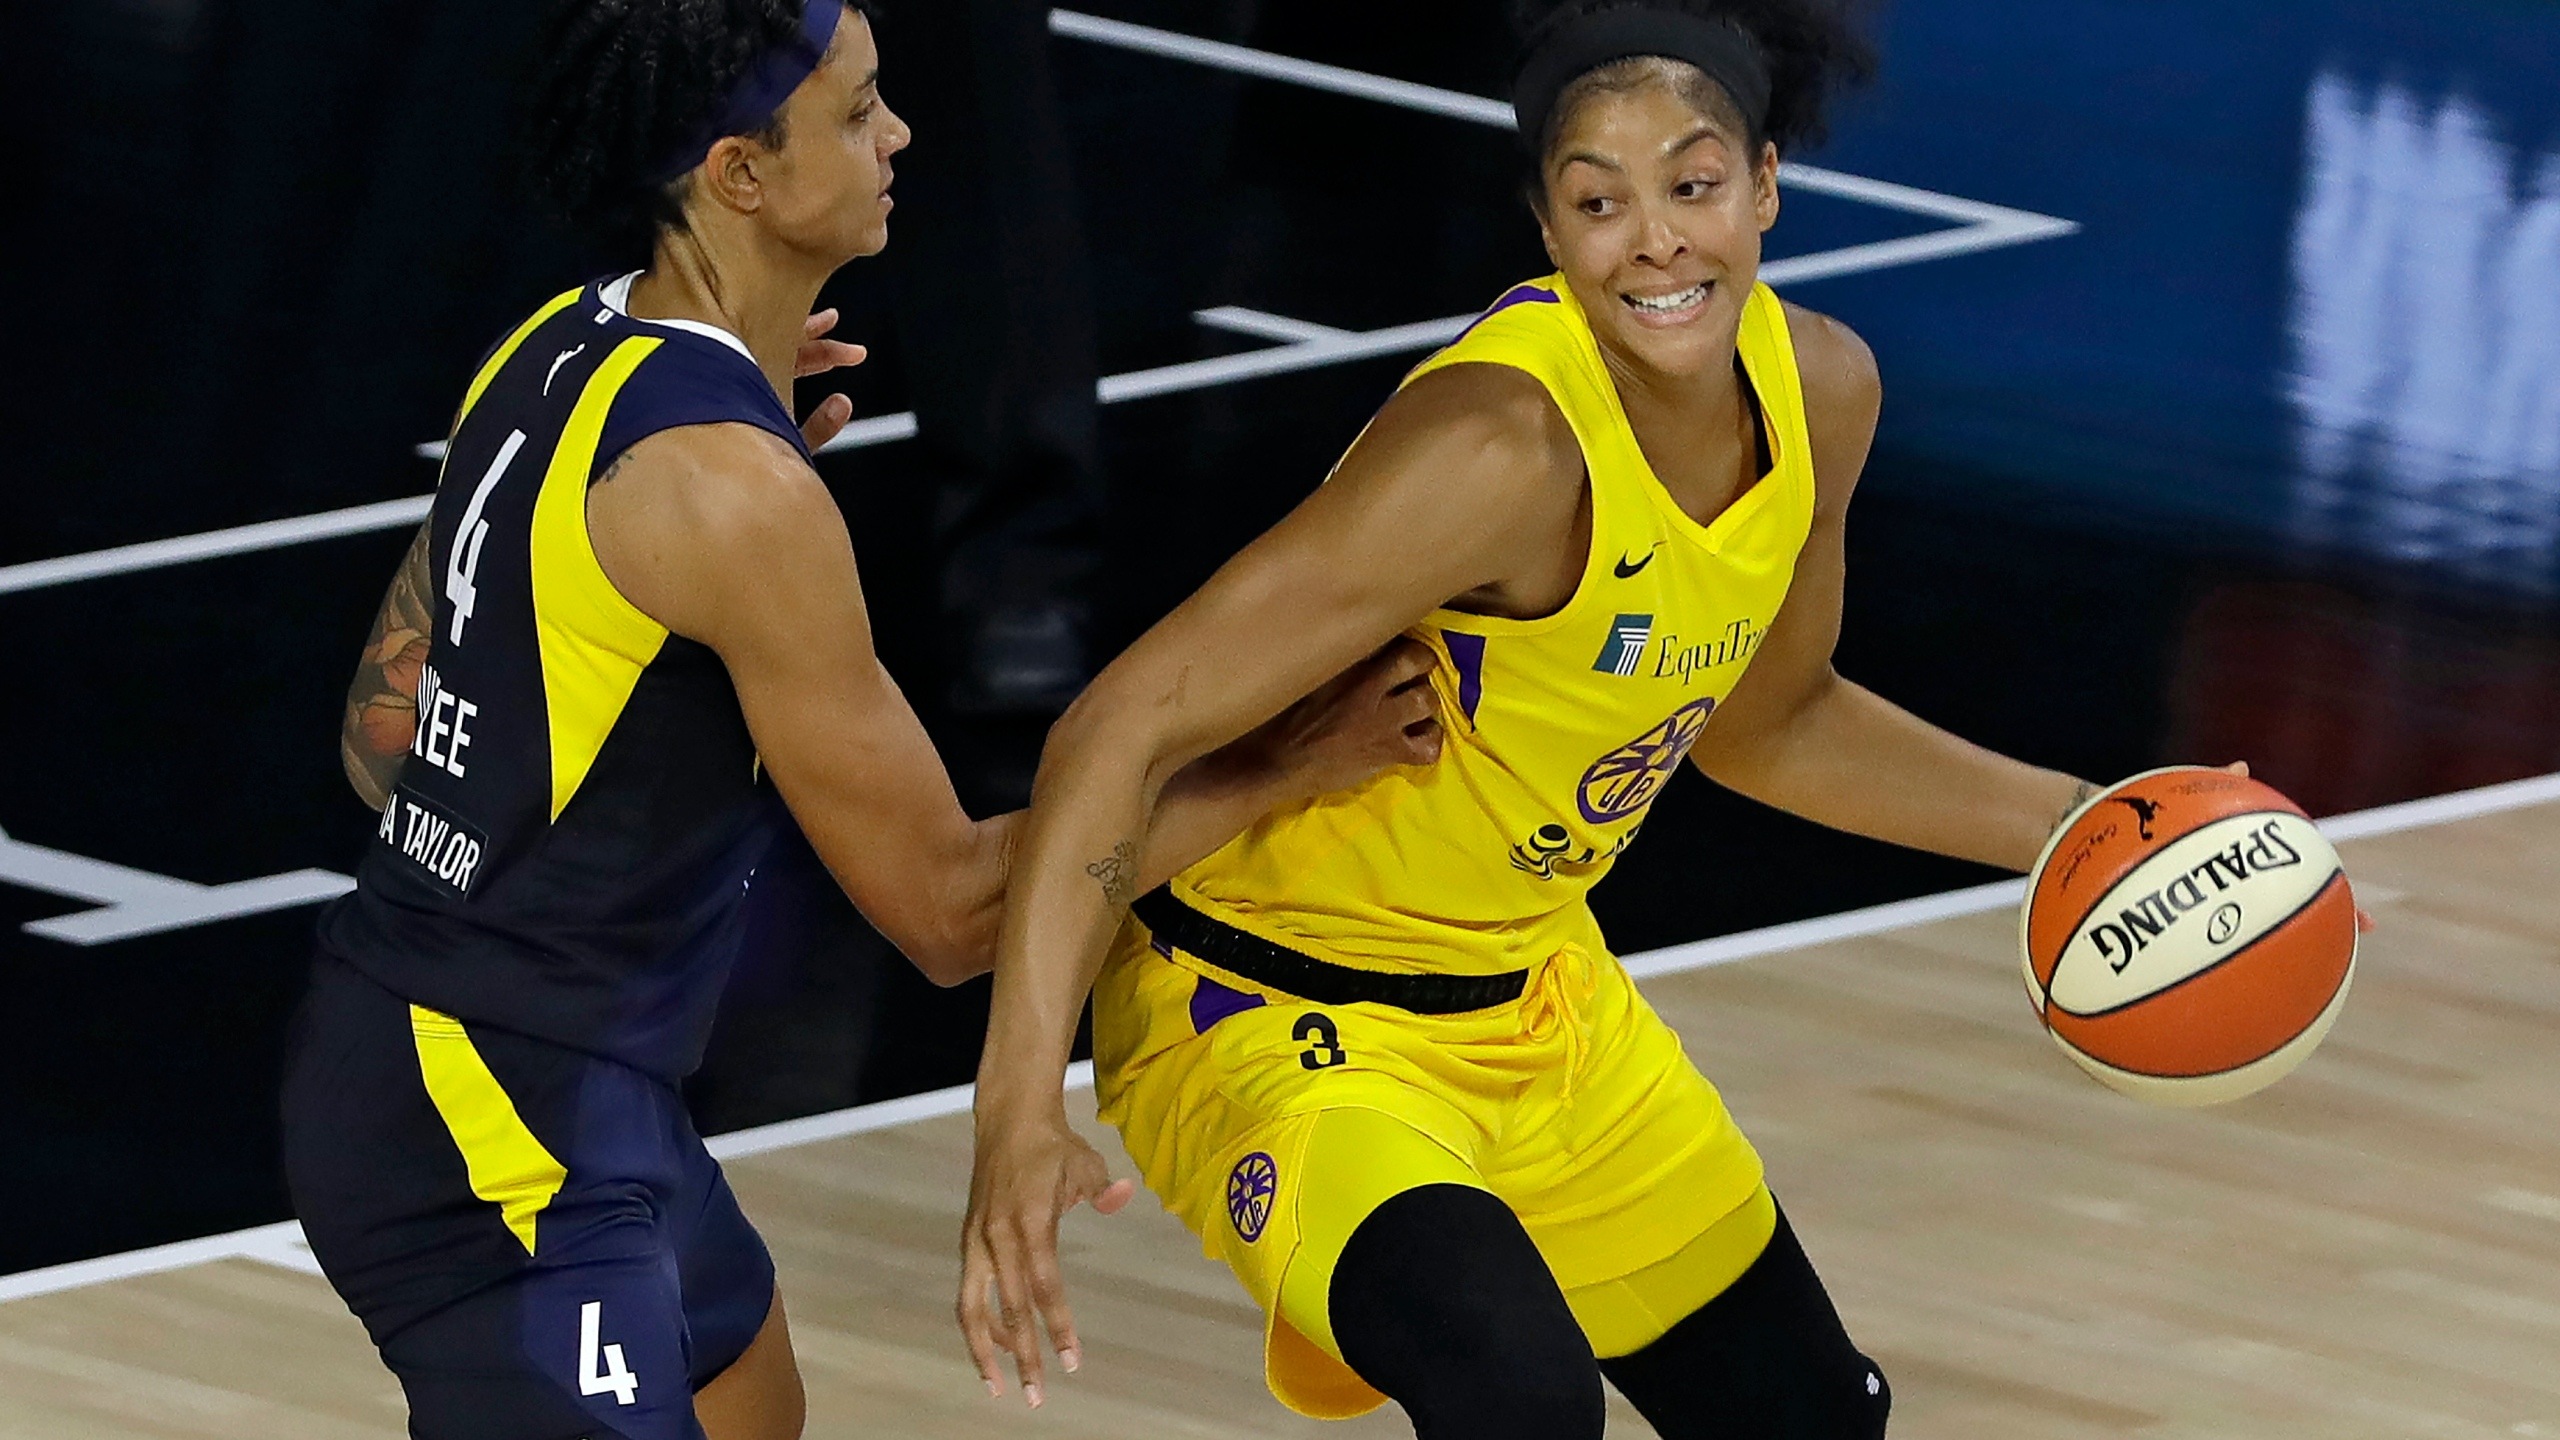 Candace Parker, Candice Dupree